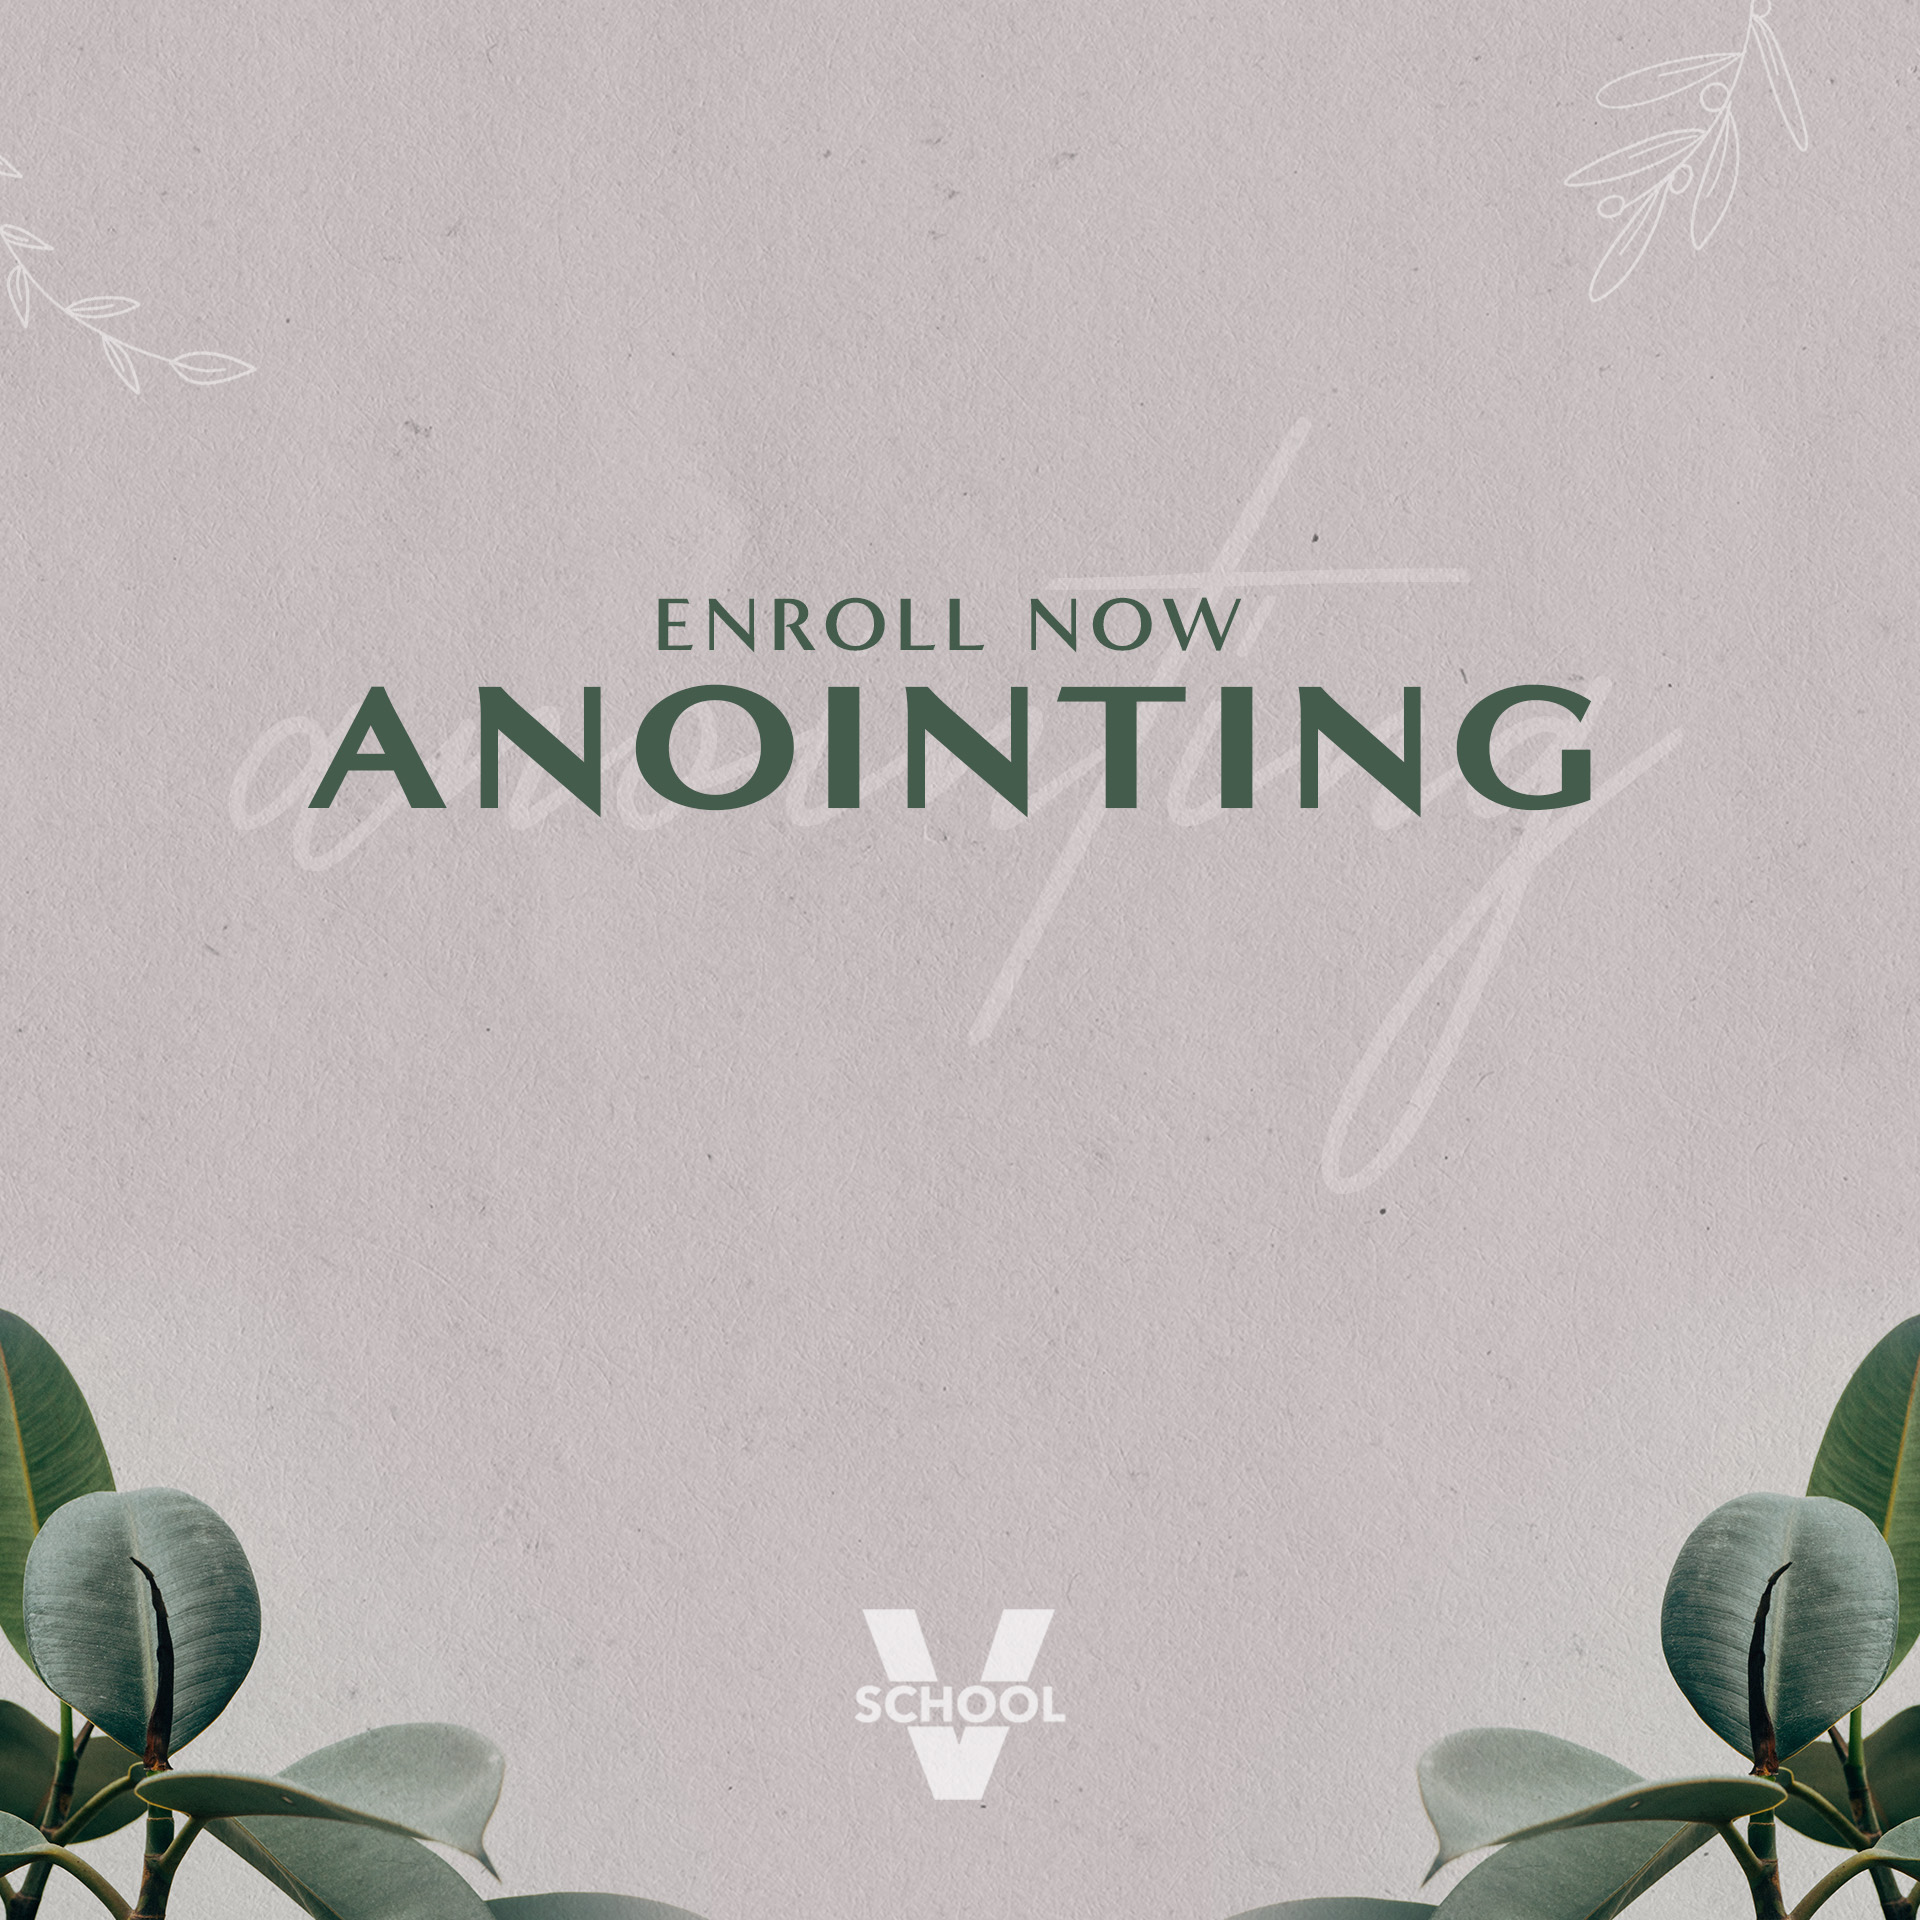 https://www.vladschool.com/courses/anointing